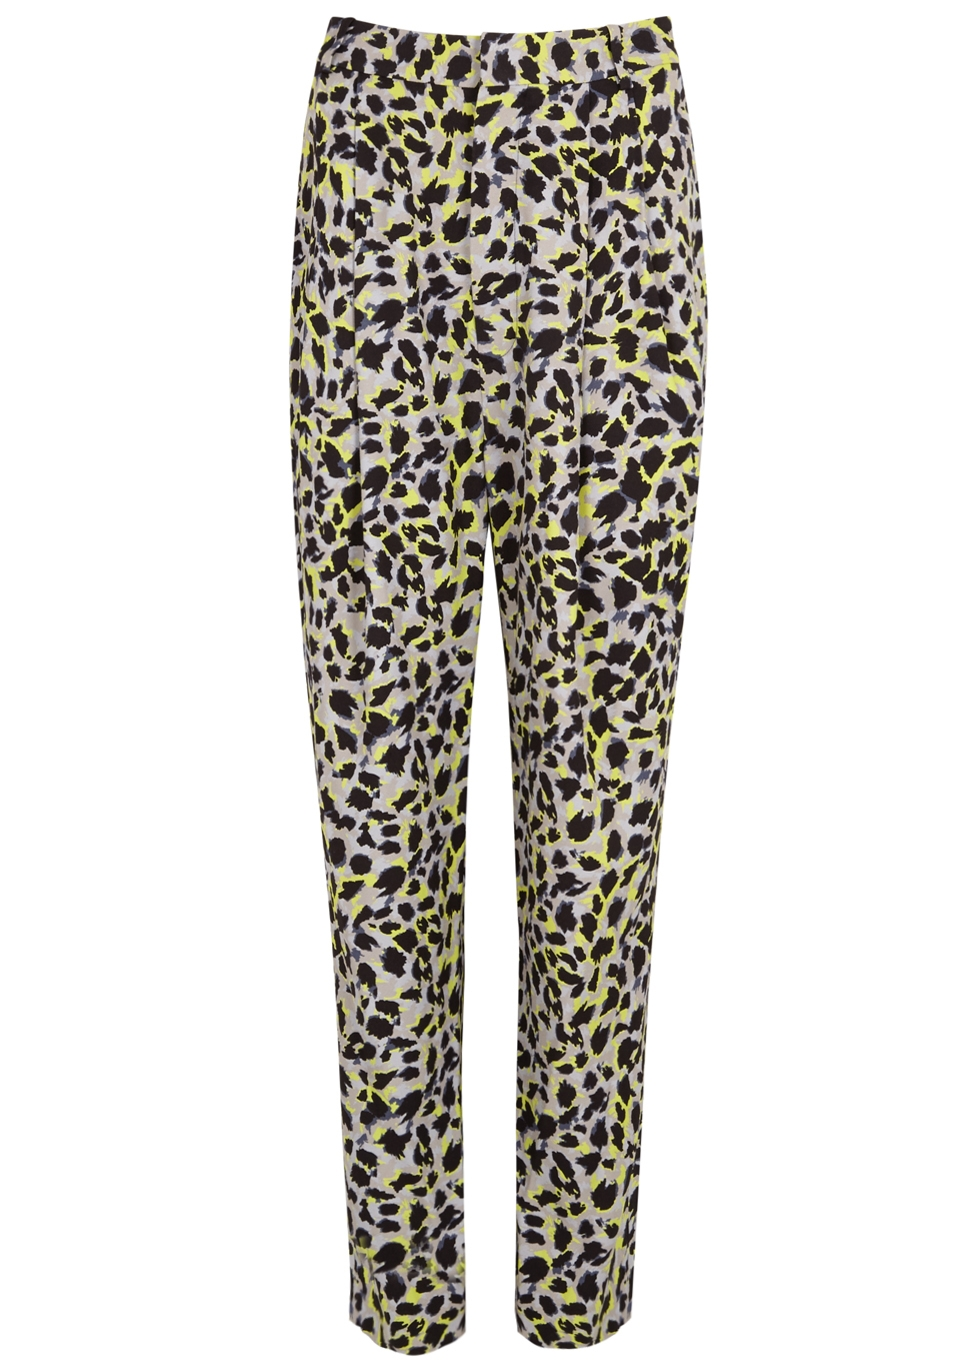 CARMEN MARCH LEOPARD-PRINT TAPERED TROUSERS